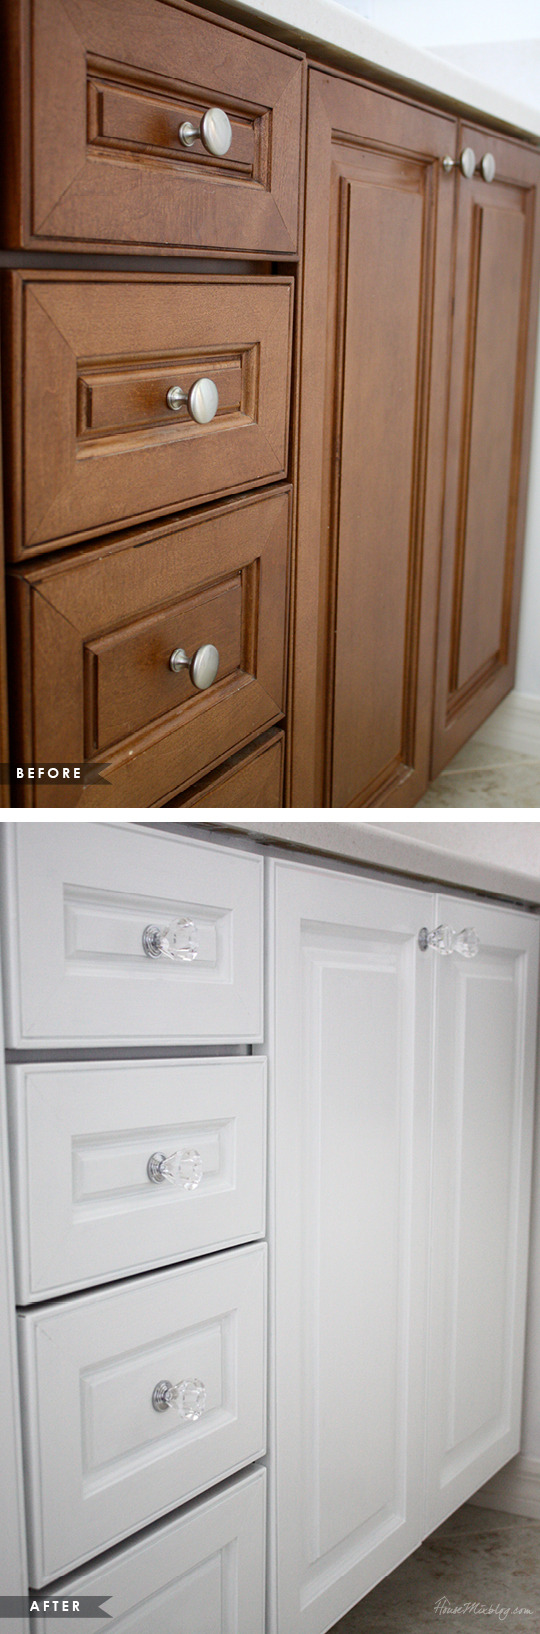 Painting Cabinet Doors Lovely How to Paint Cabinets without Removing Doors